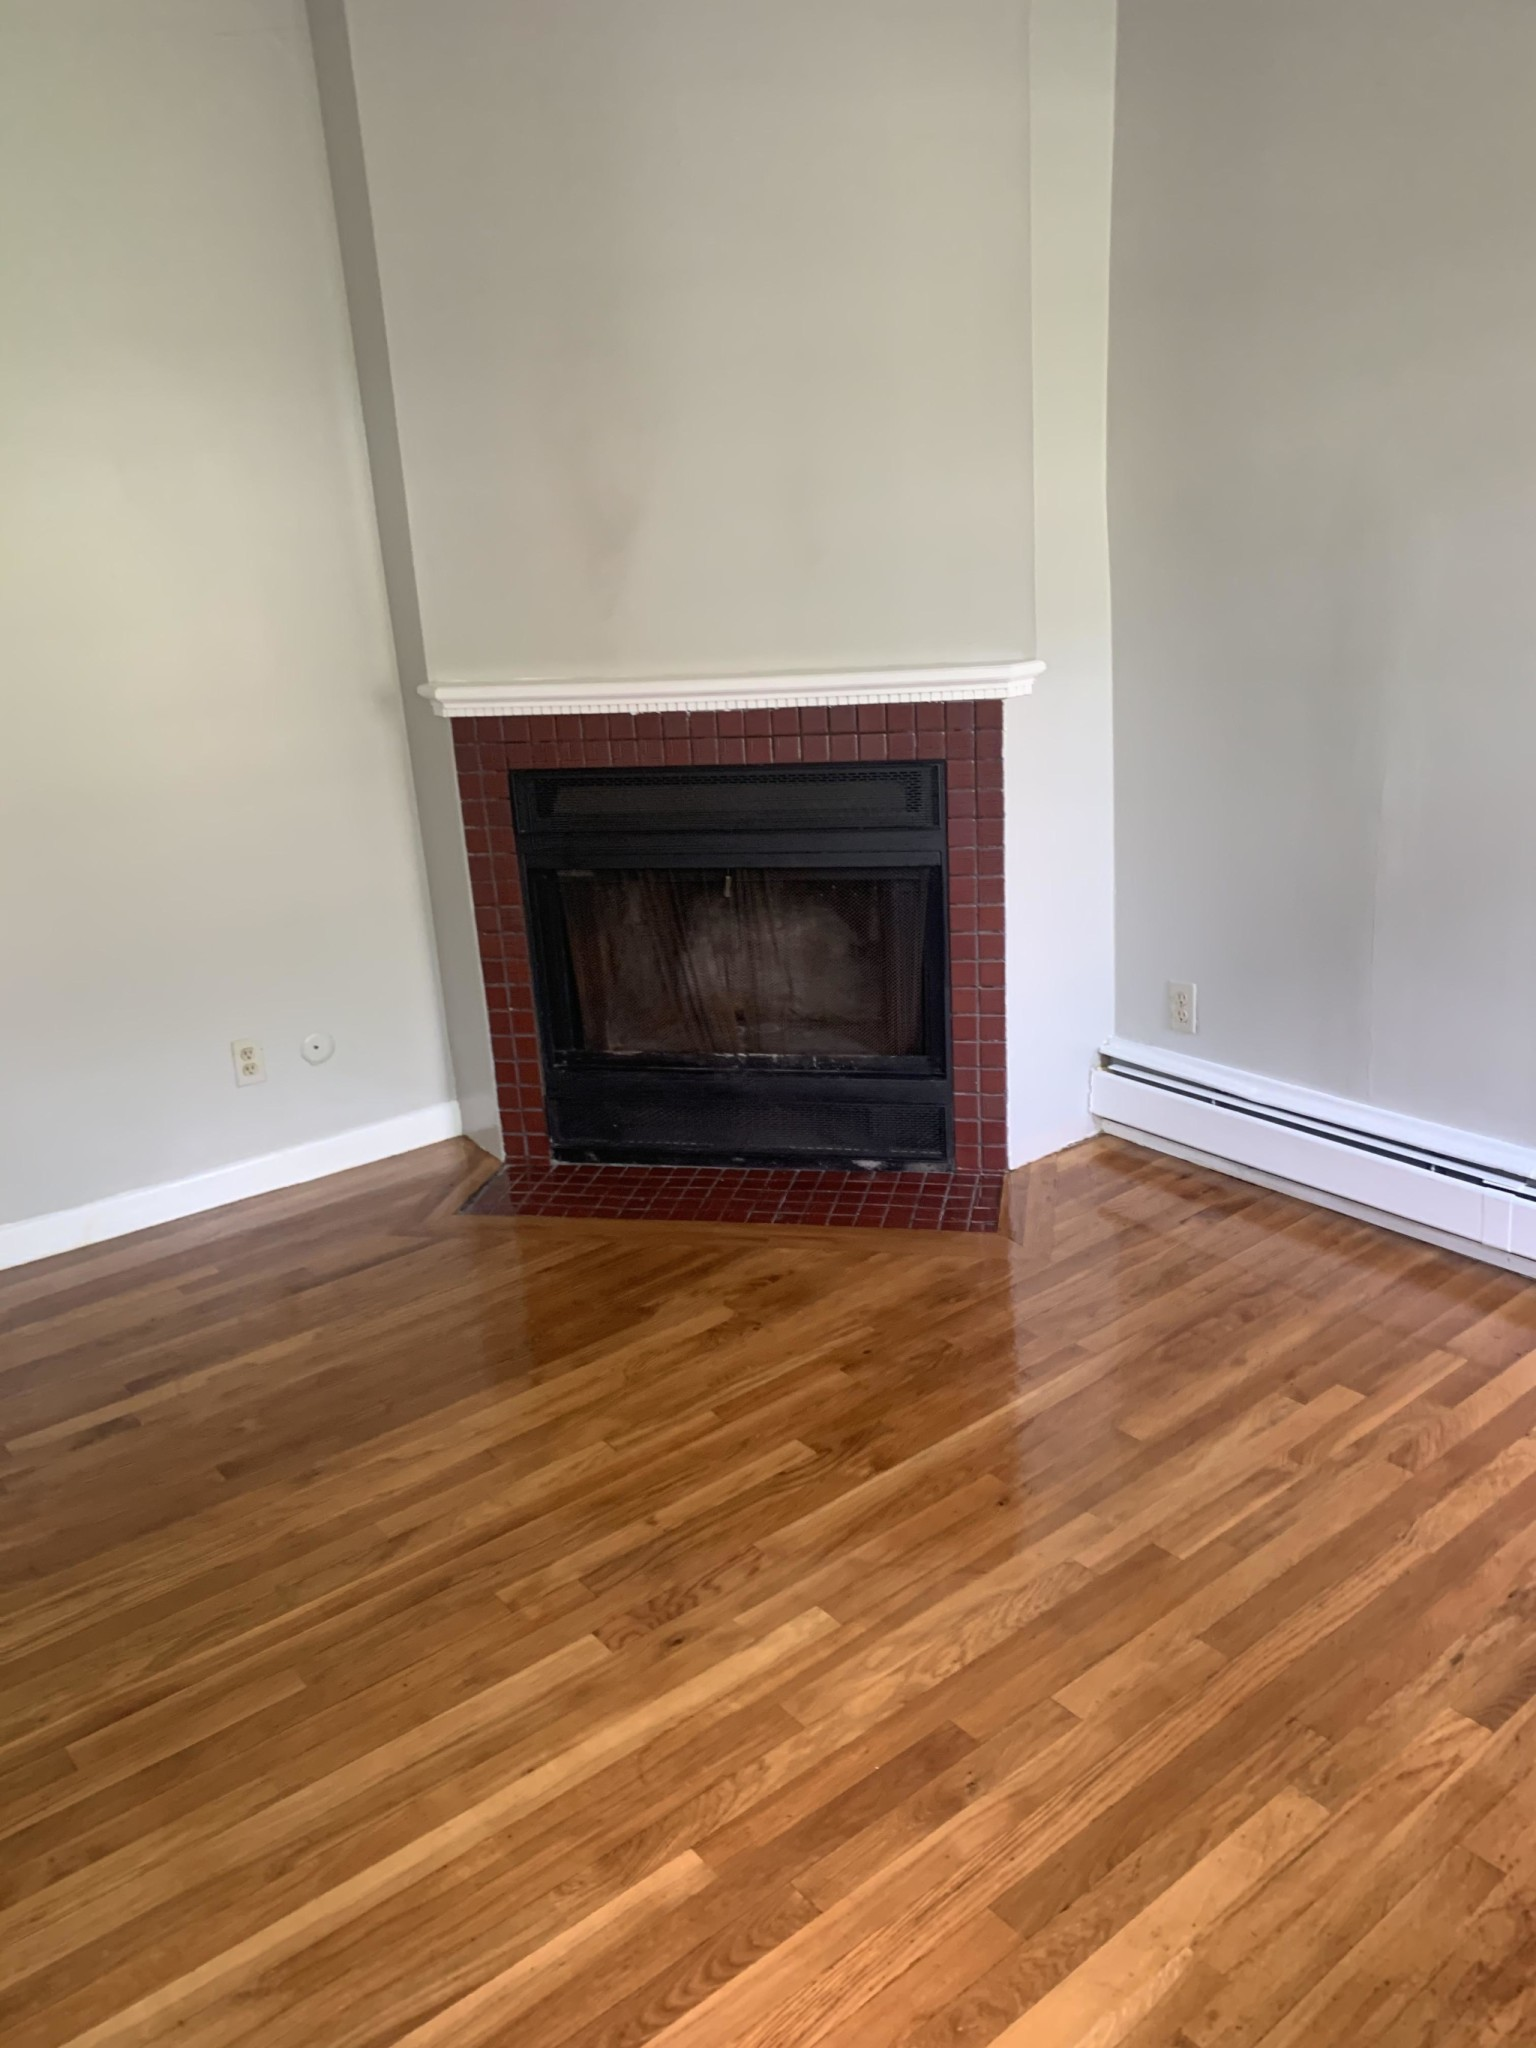 2 Beds, 1 Bath apartment in Boston, Beacon Hill for $2,600